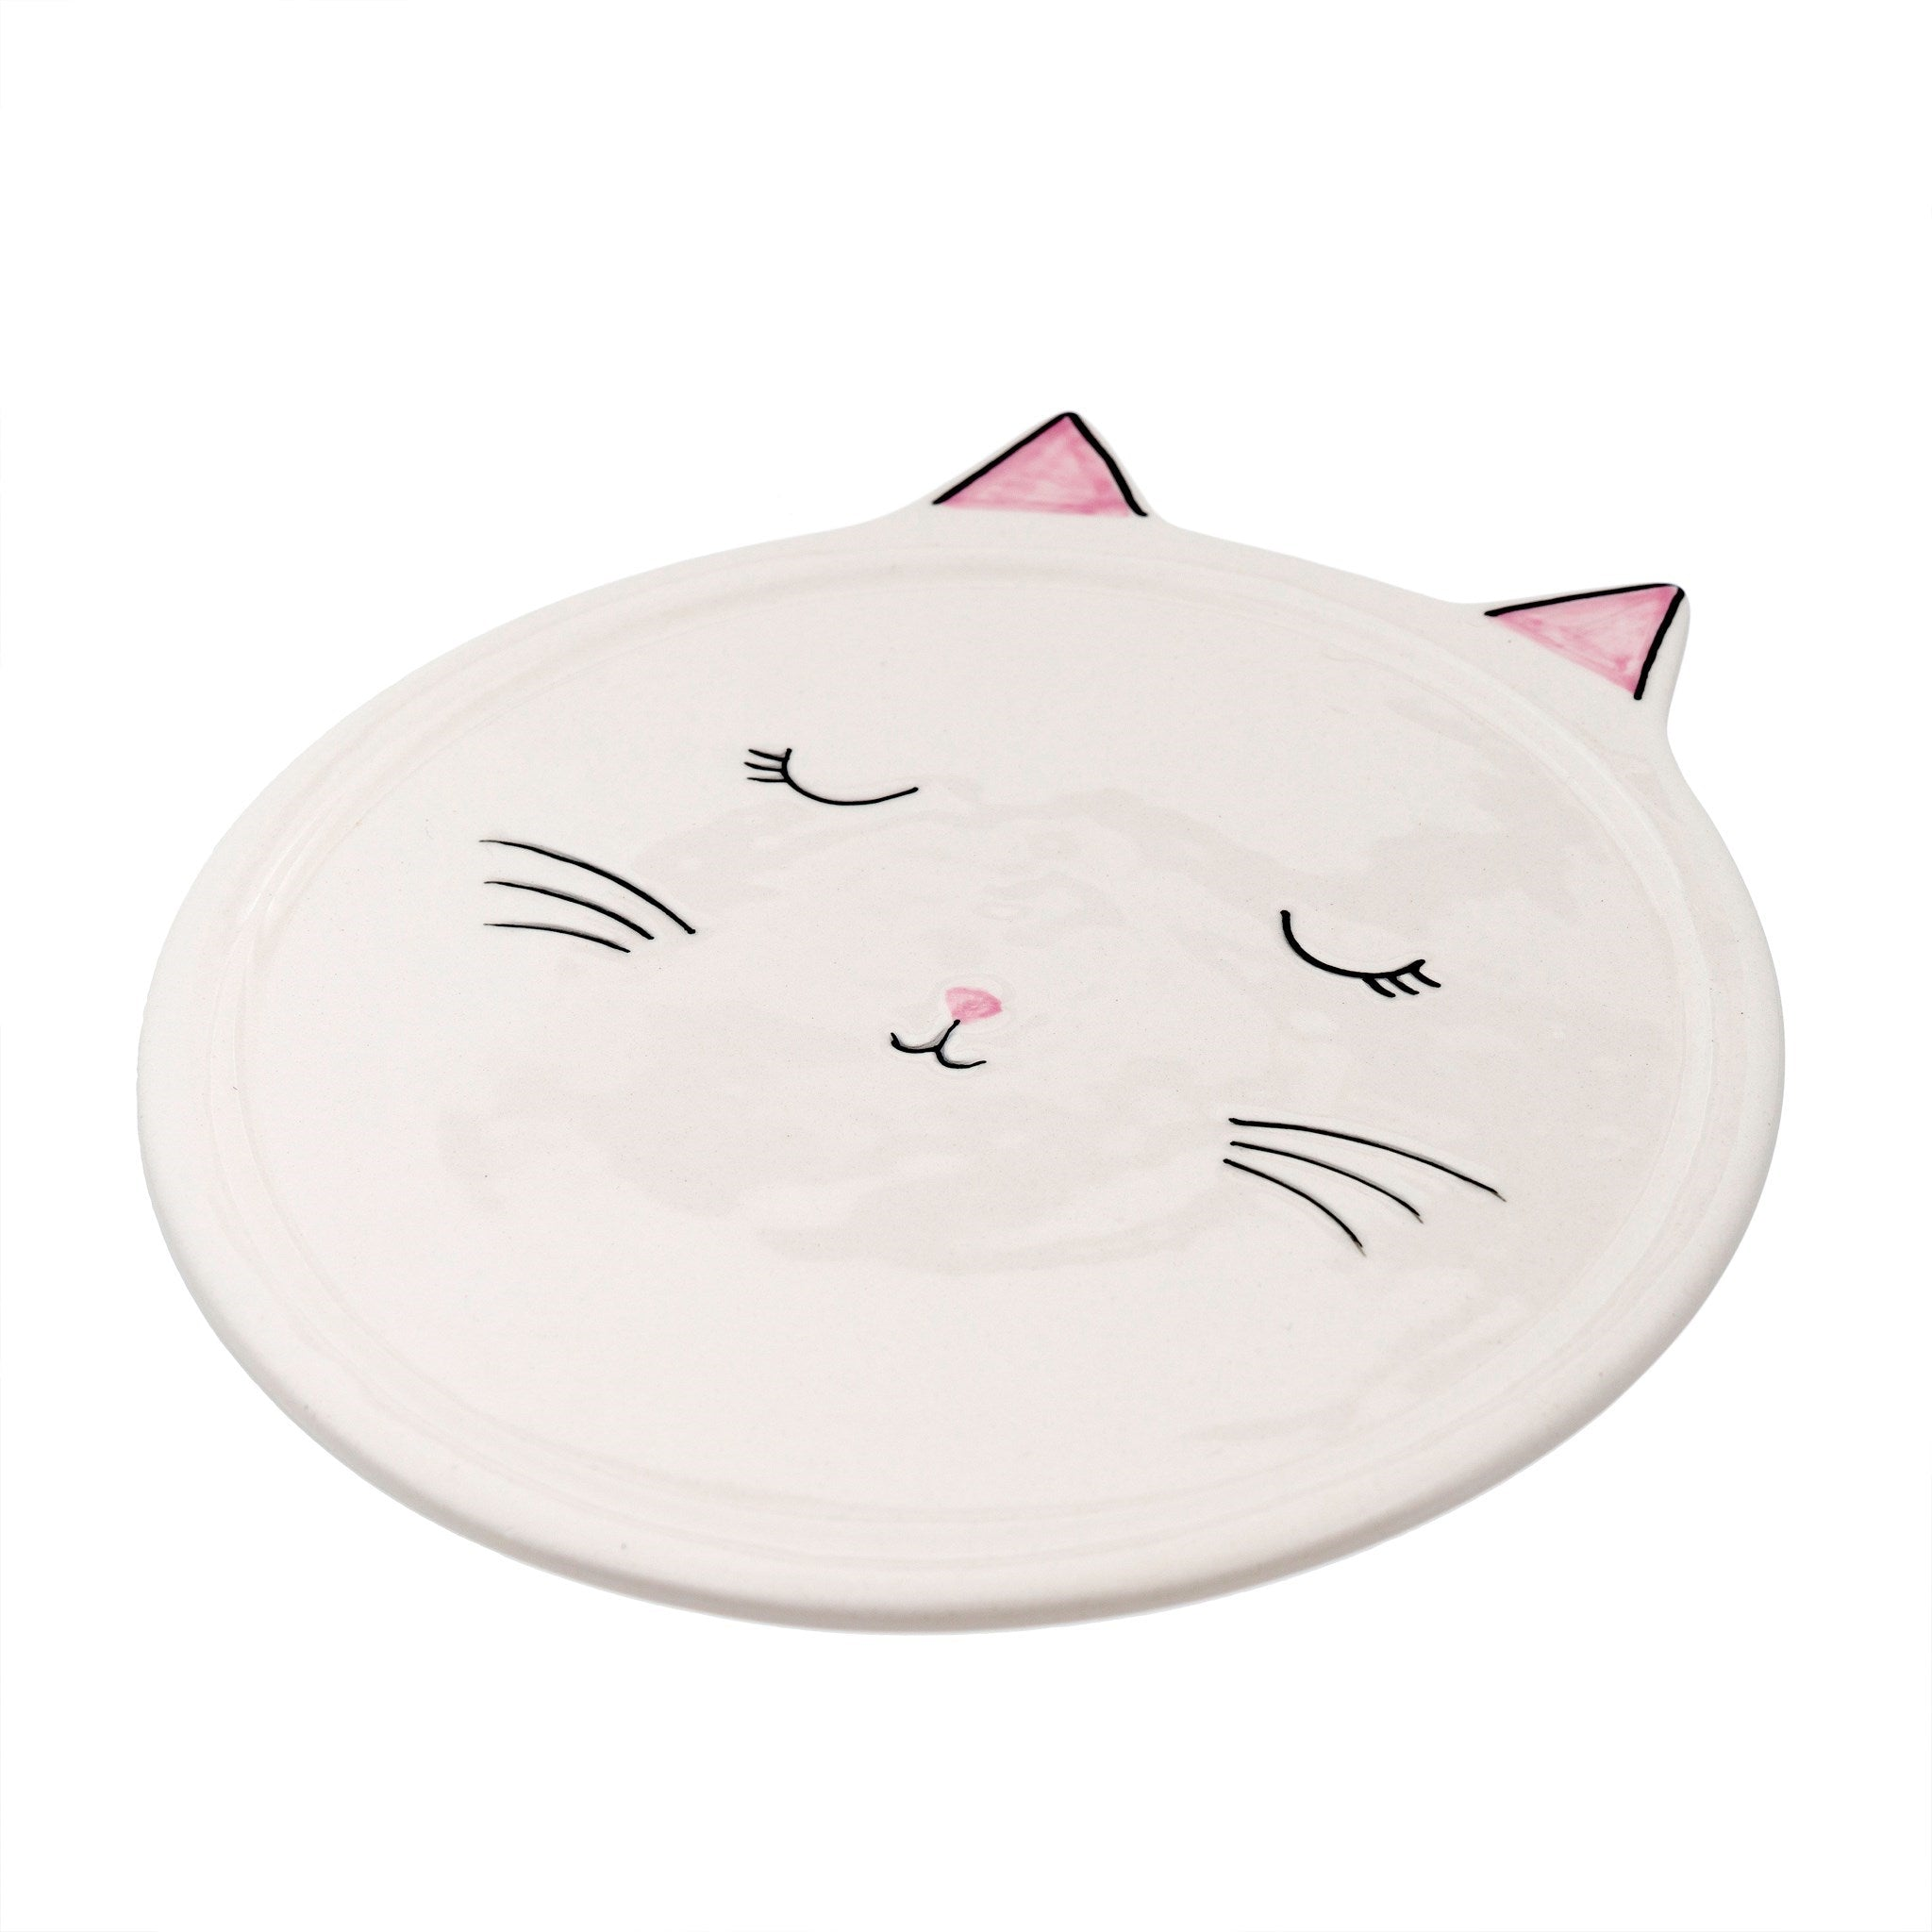 Little Kitty Plate